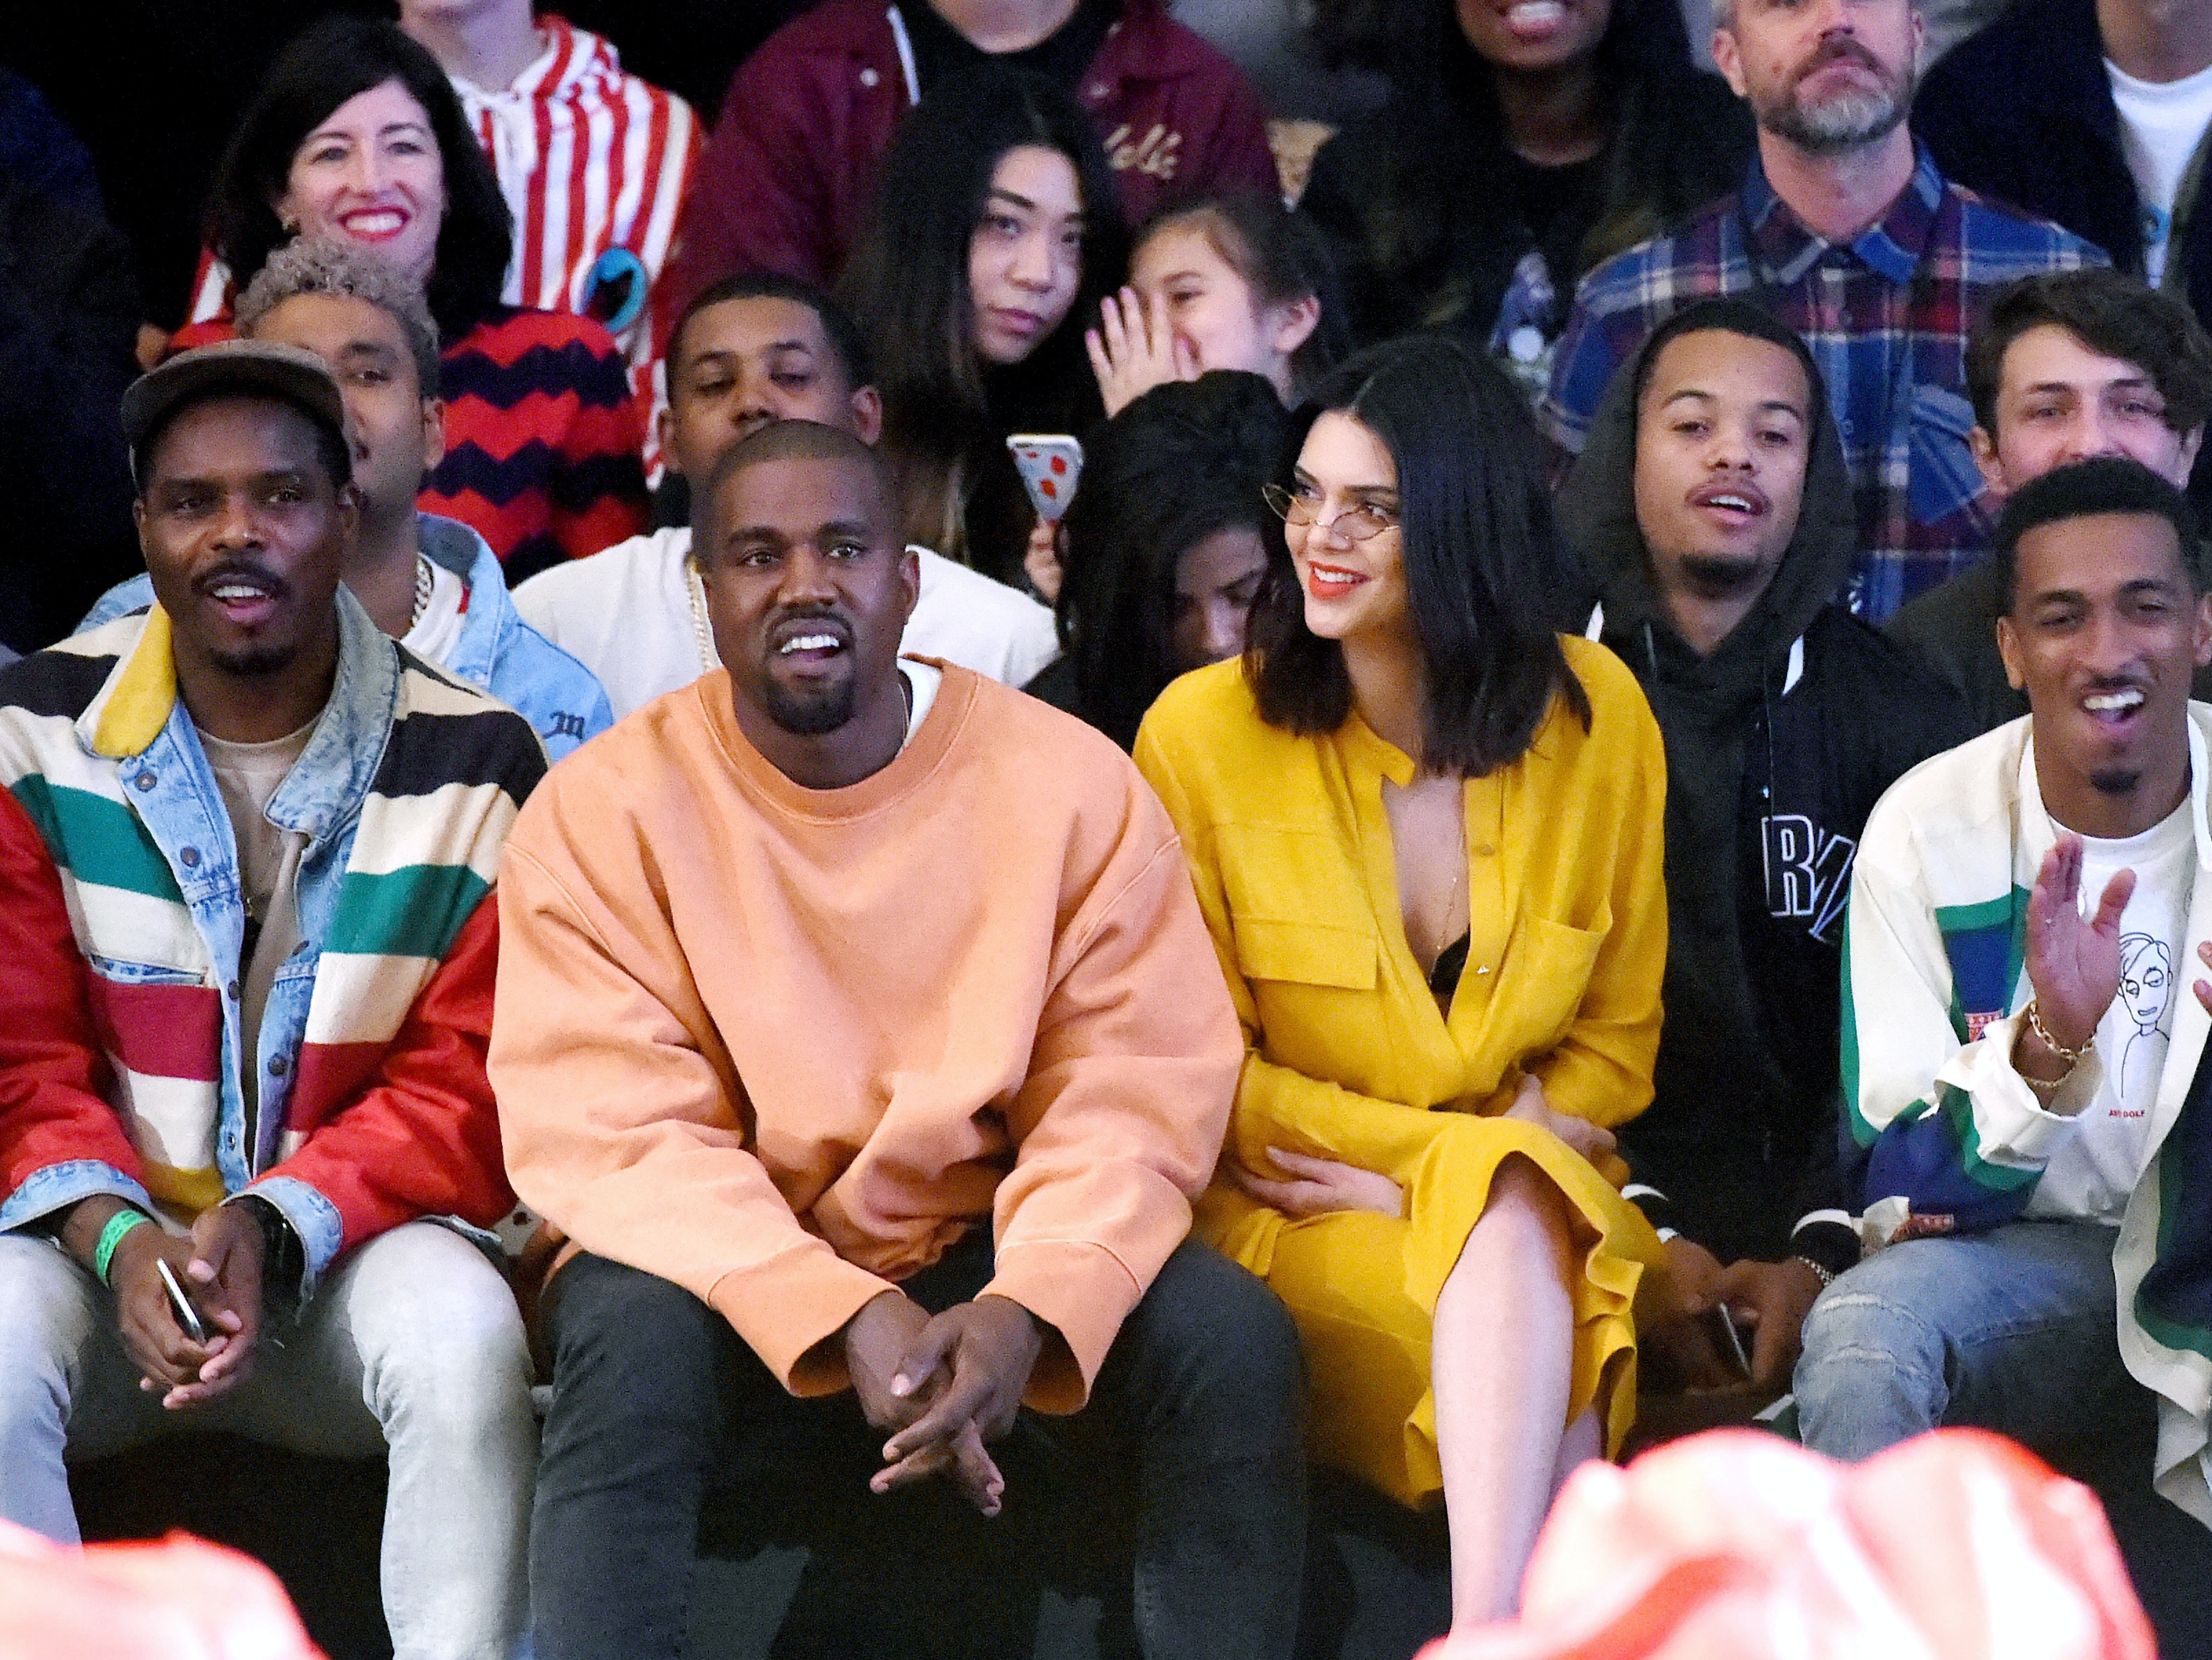 Hip hop artist/designer/producer Kanye West (L) and model Kendall Jenner attend Tyler, the Creator's fashion show for Made LA at L.A. Live on June 11, 2016 in Los Angeles, California.  (Photo by Kevin Winter/Getty Images)